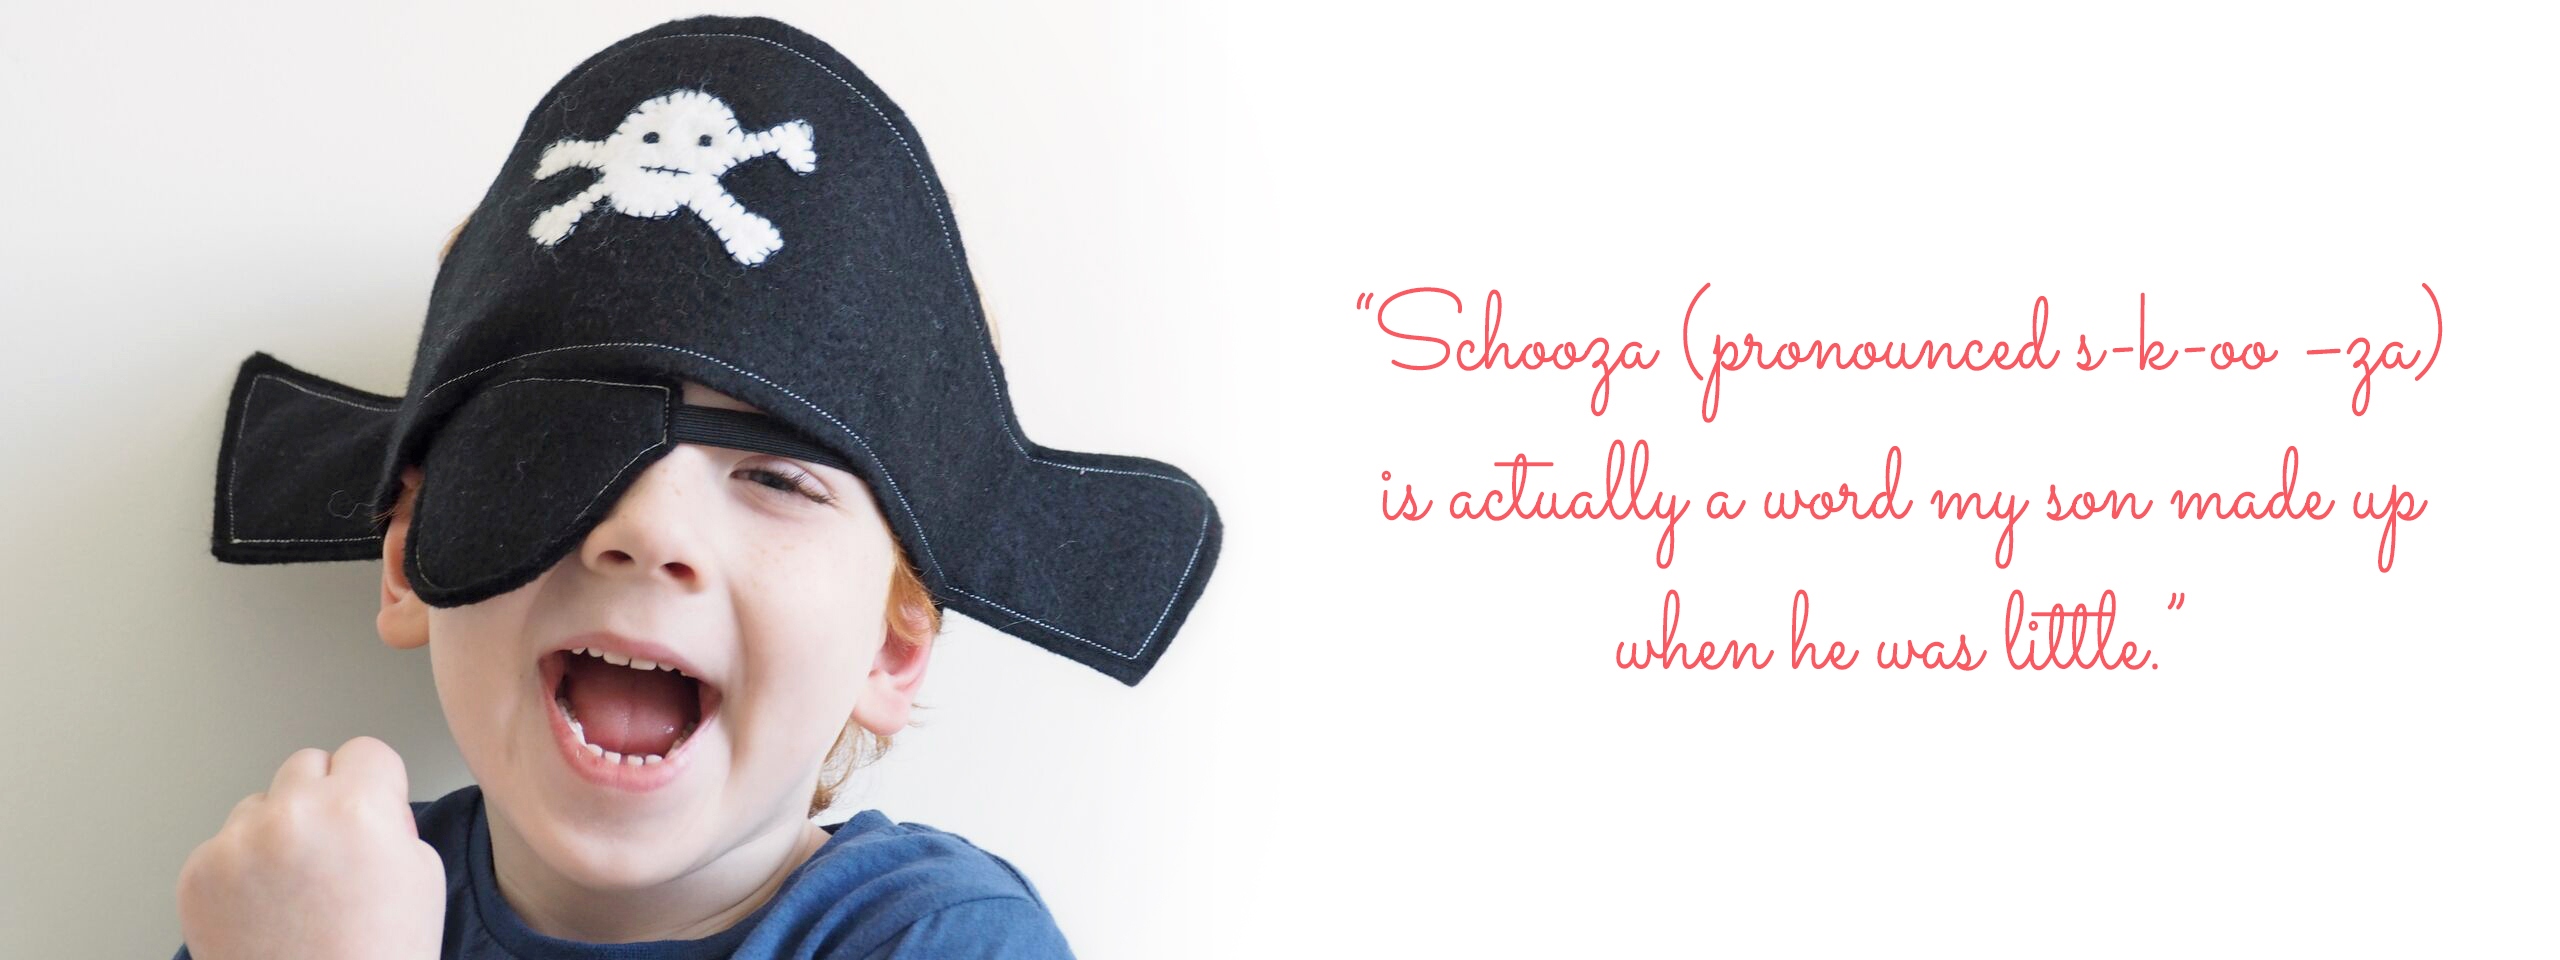 Pirate Hat: 'My children are my biggest inspiration, and my store name, Schooza (pronounced s-k-oo –za) is actually a word my son made up when he was little.'